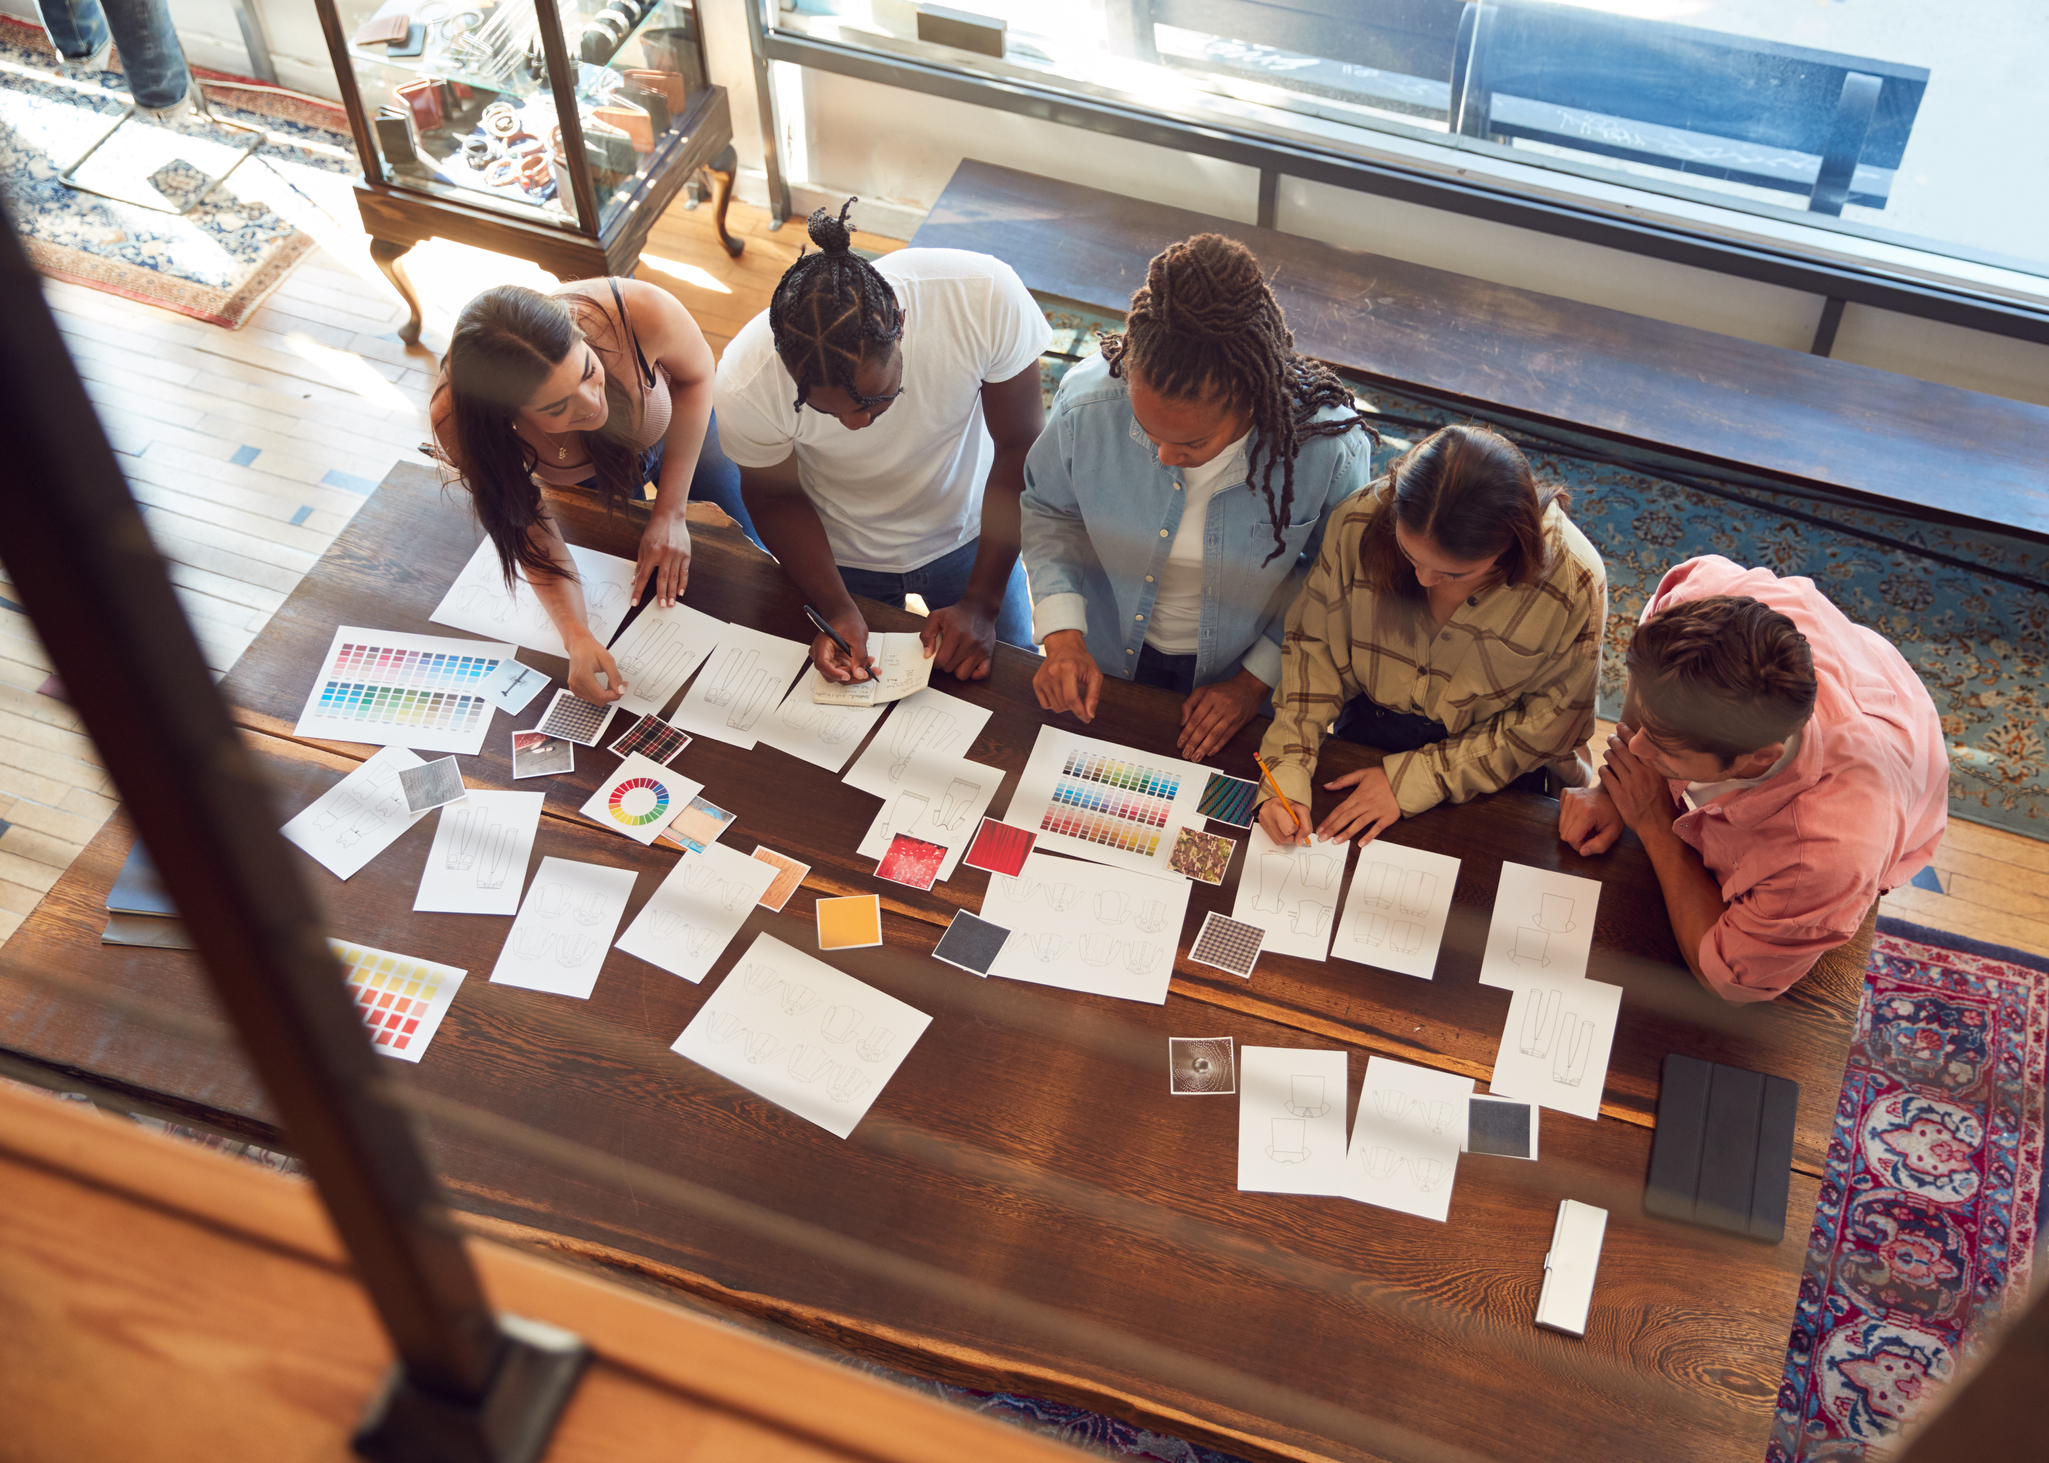 people-gathered-around-a-table-with-notes-and-papers